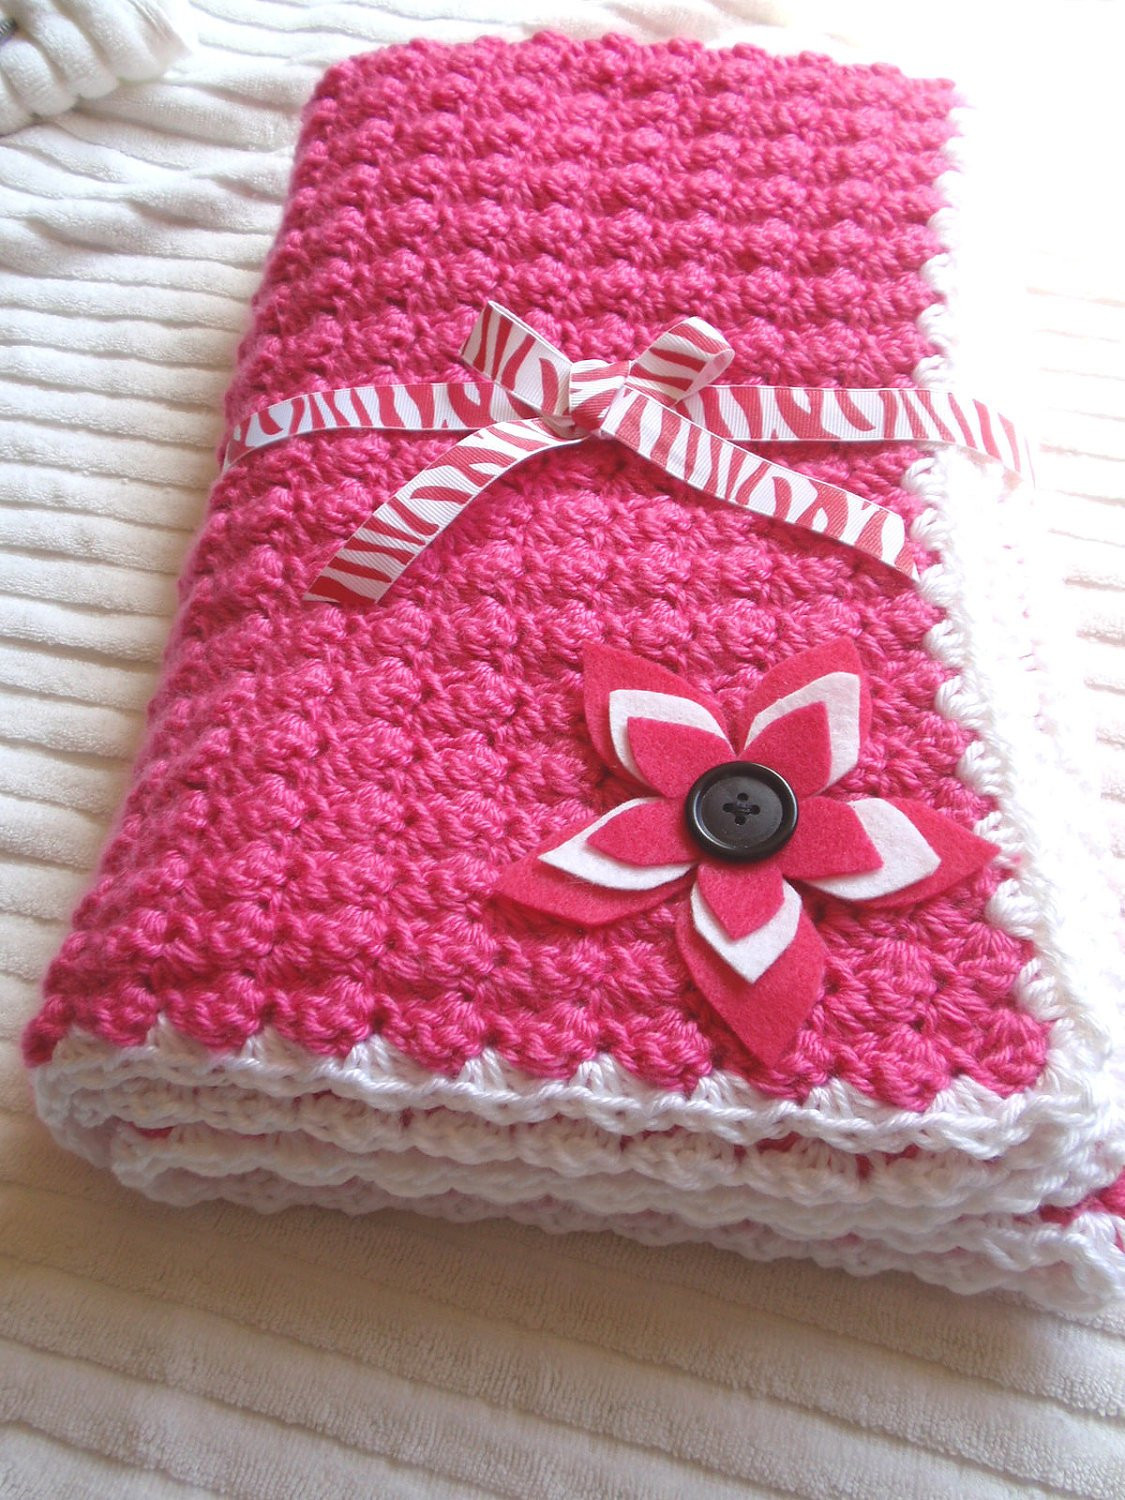 Elegant Handmade Crocheted Baby Blanket In White Pink and Black with Handmade Crochet Of Delightful 40 Pics Handmade Crochet